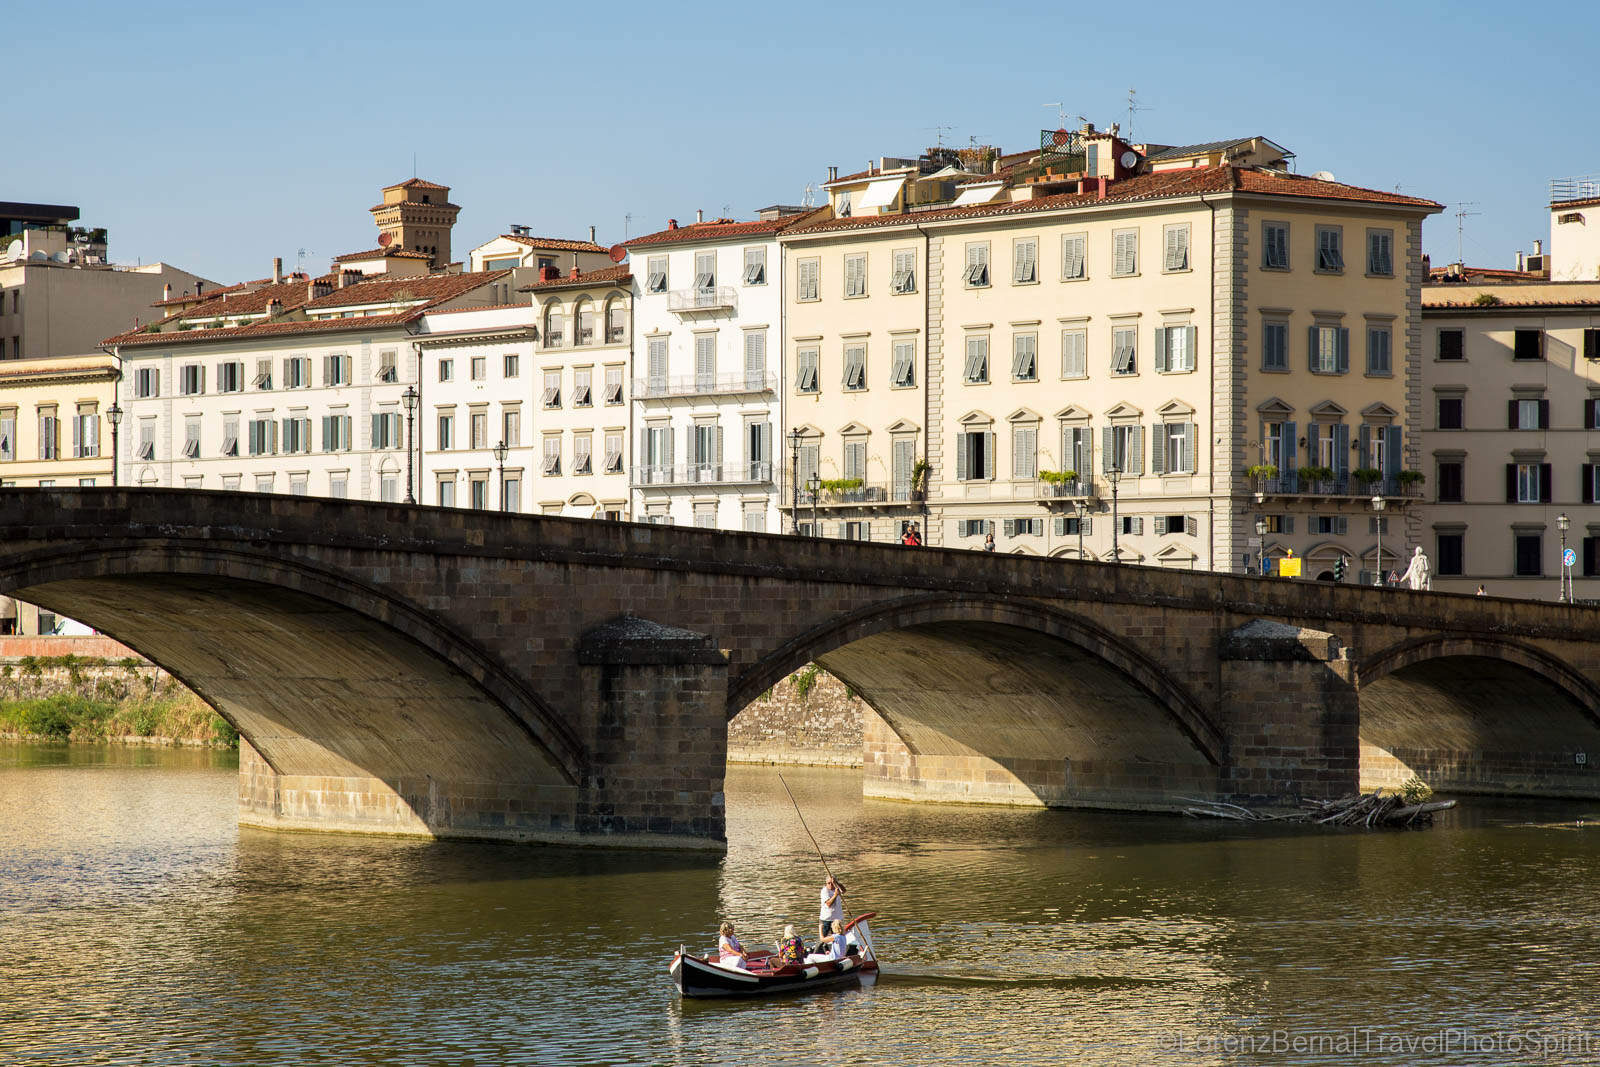 Group of tourist on a boat trip on the Arno River, Florence, Tuscany, Italy.